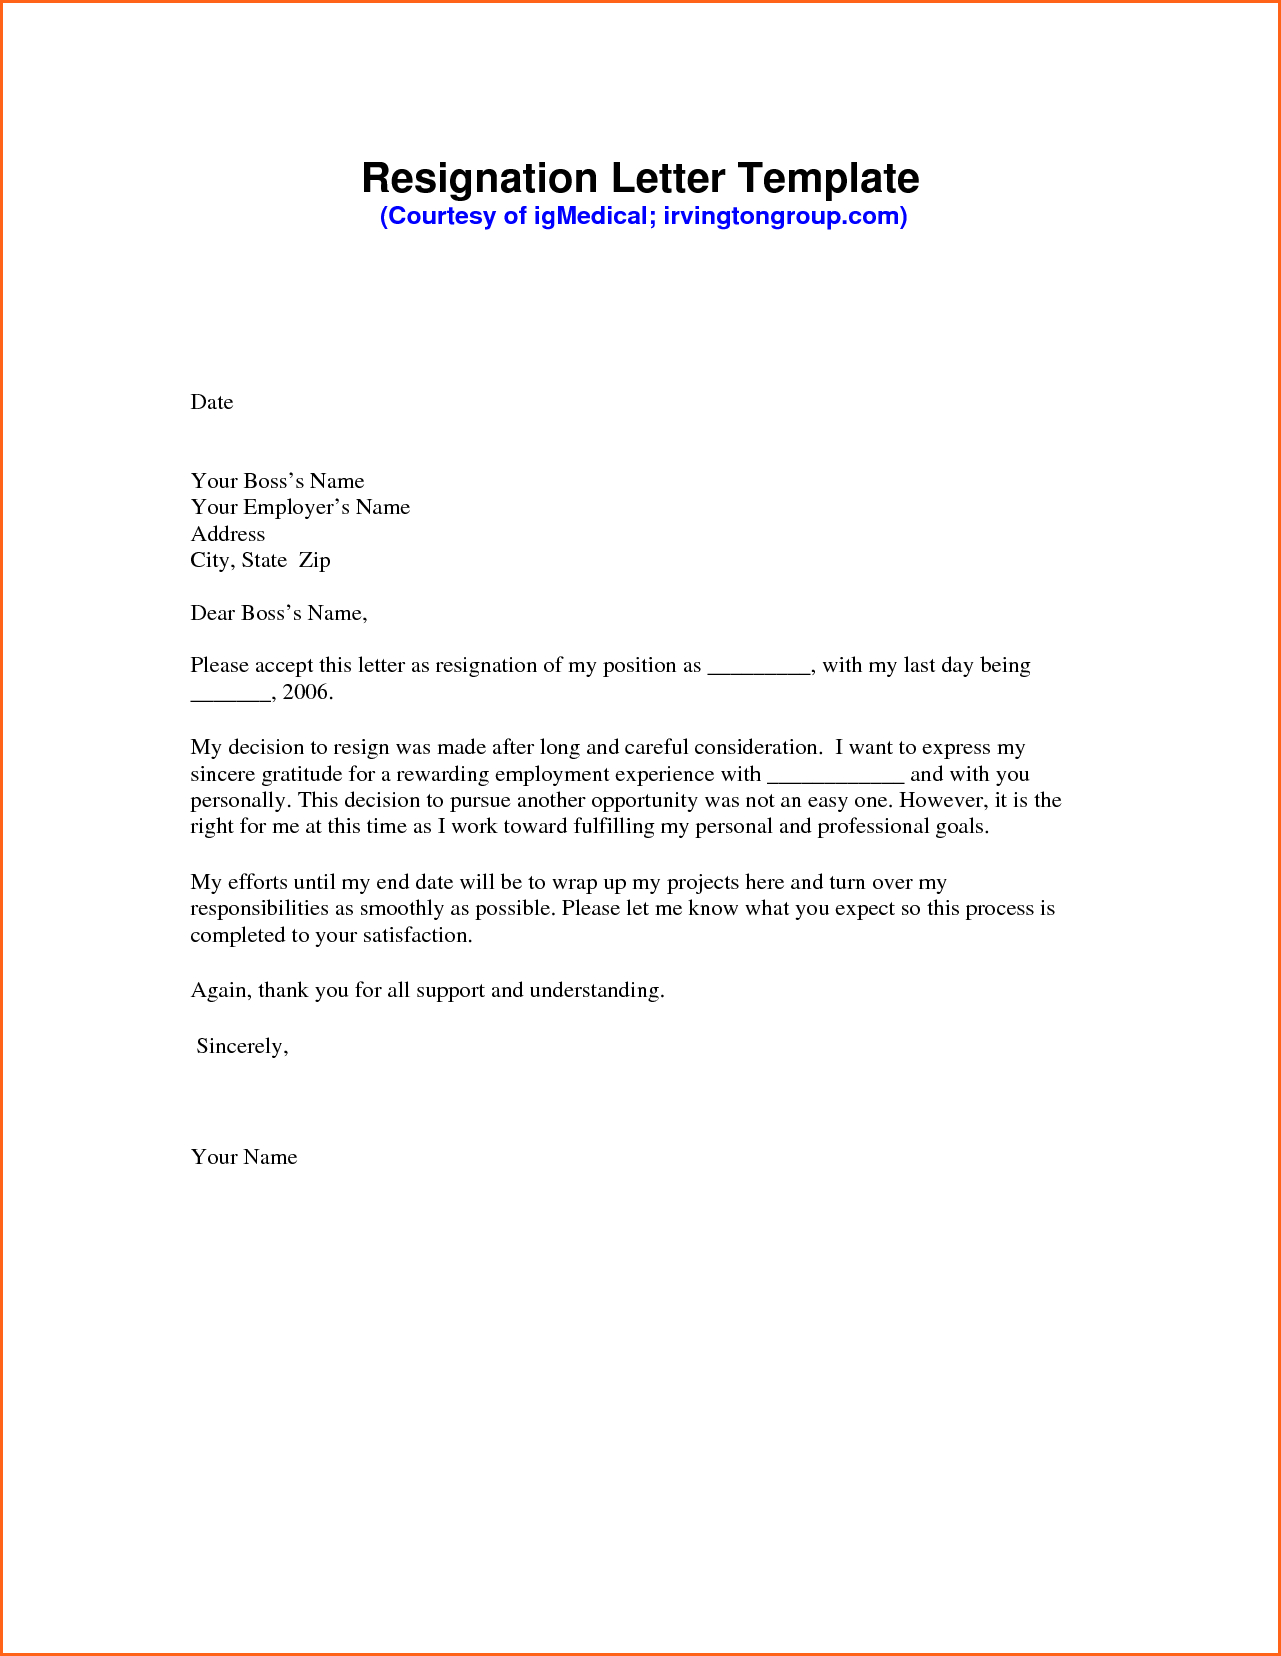 Sample Resignation Letter Template - Resignation Letter Sample Pdf Mechanical Engineering Resume Template